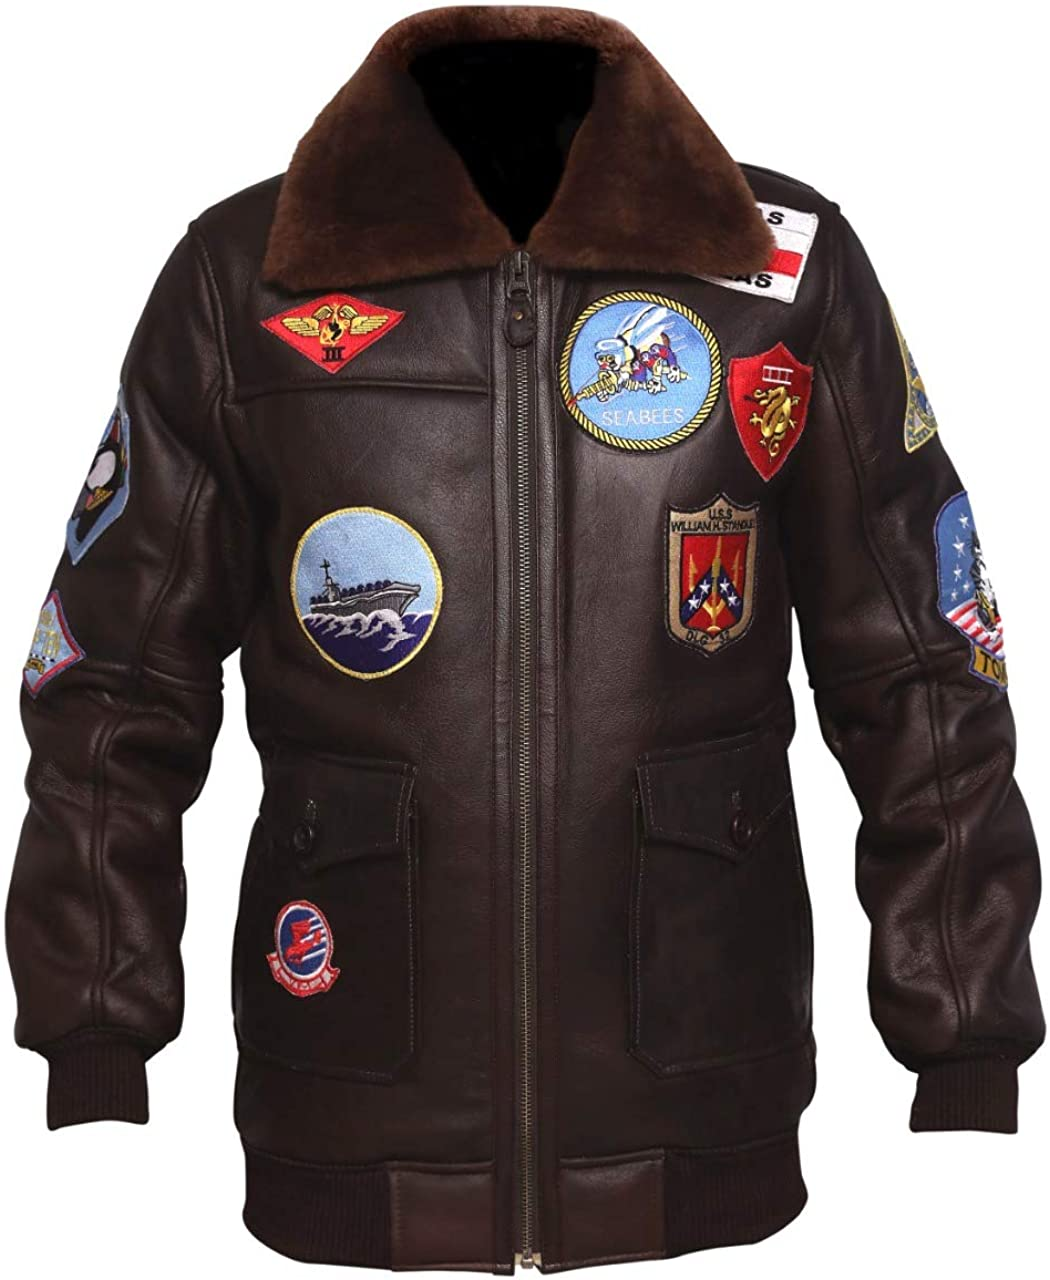 Mens G-1 Flight Bomber Jacket - WW2 Real Fur-Collar Patches Brown Leather Jacket